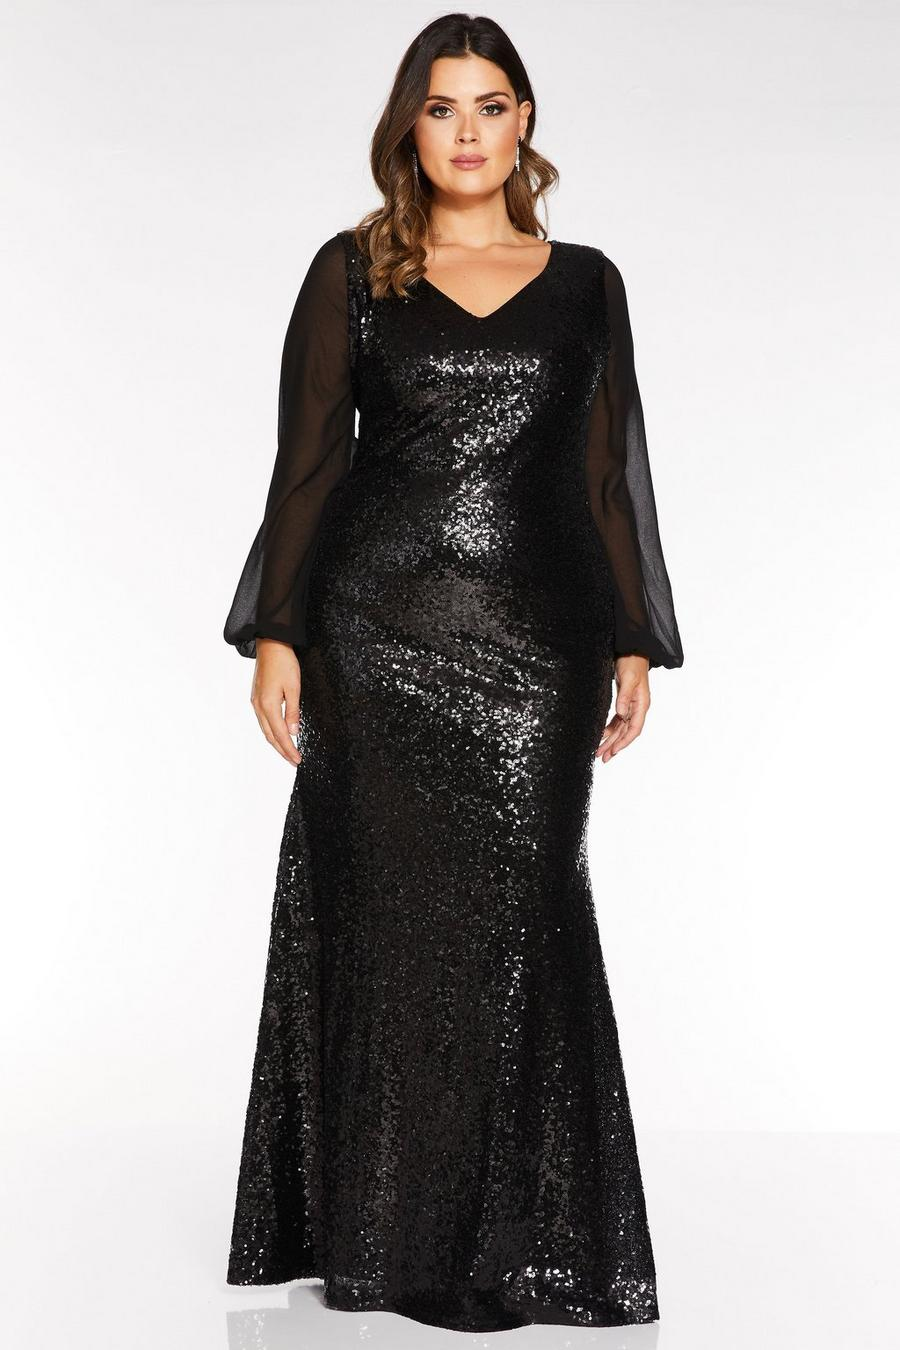 Plus Size Black Sequin V Neck Maxi Dress